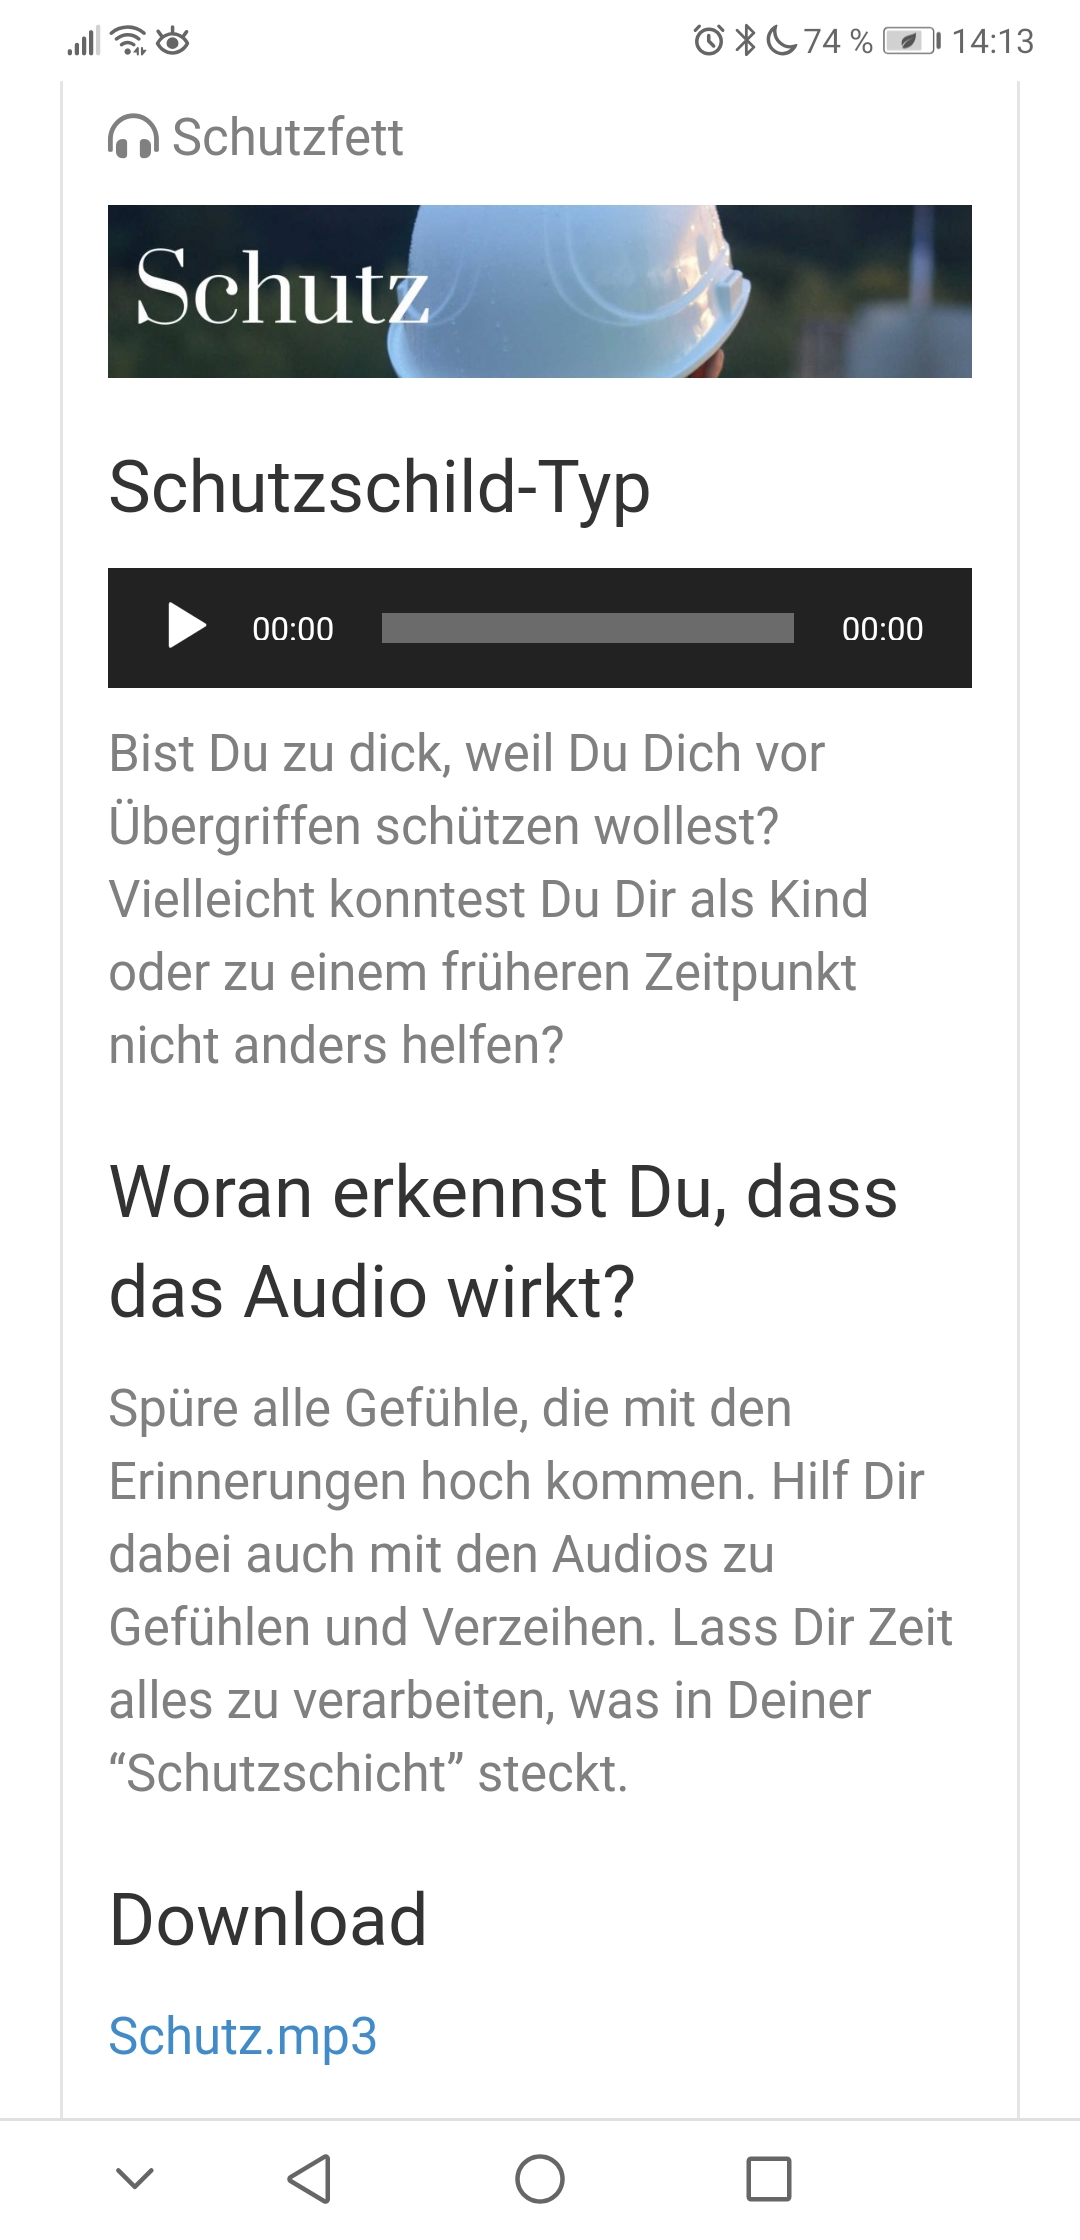 Screenshot-Schutzfett Audio mit Download-Link